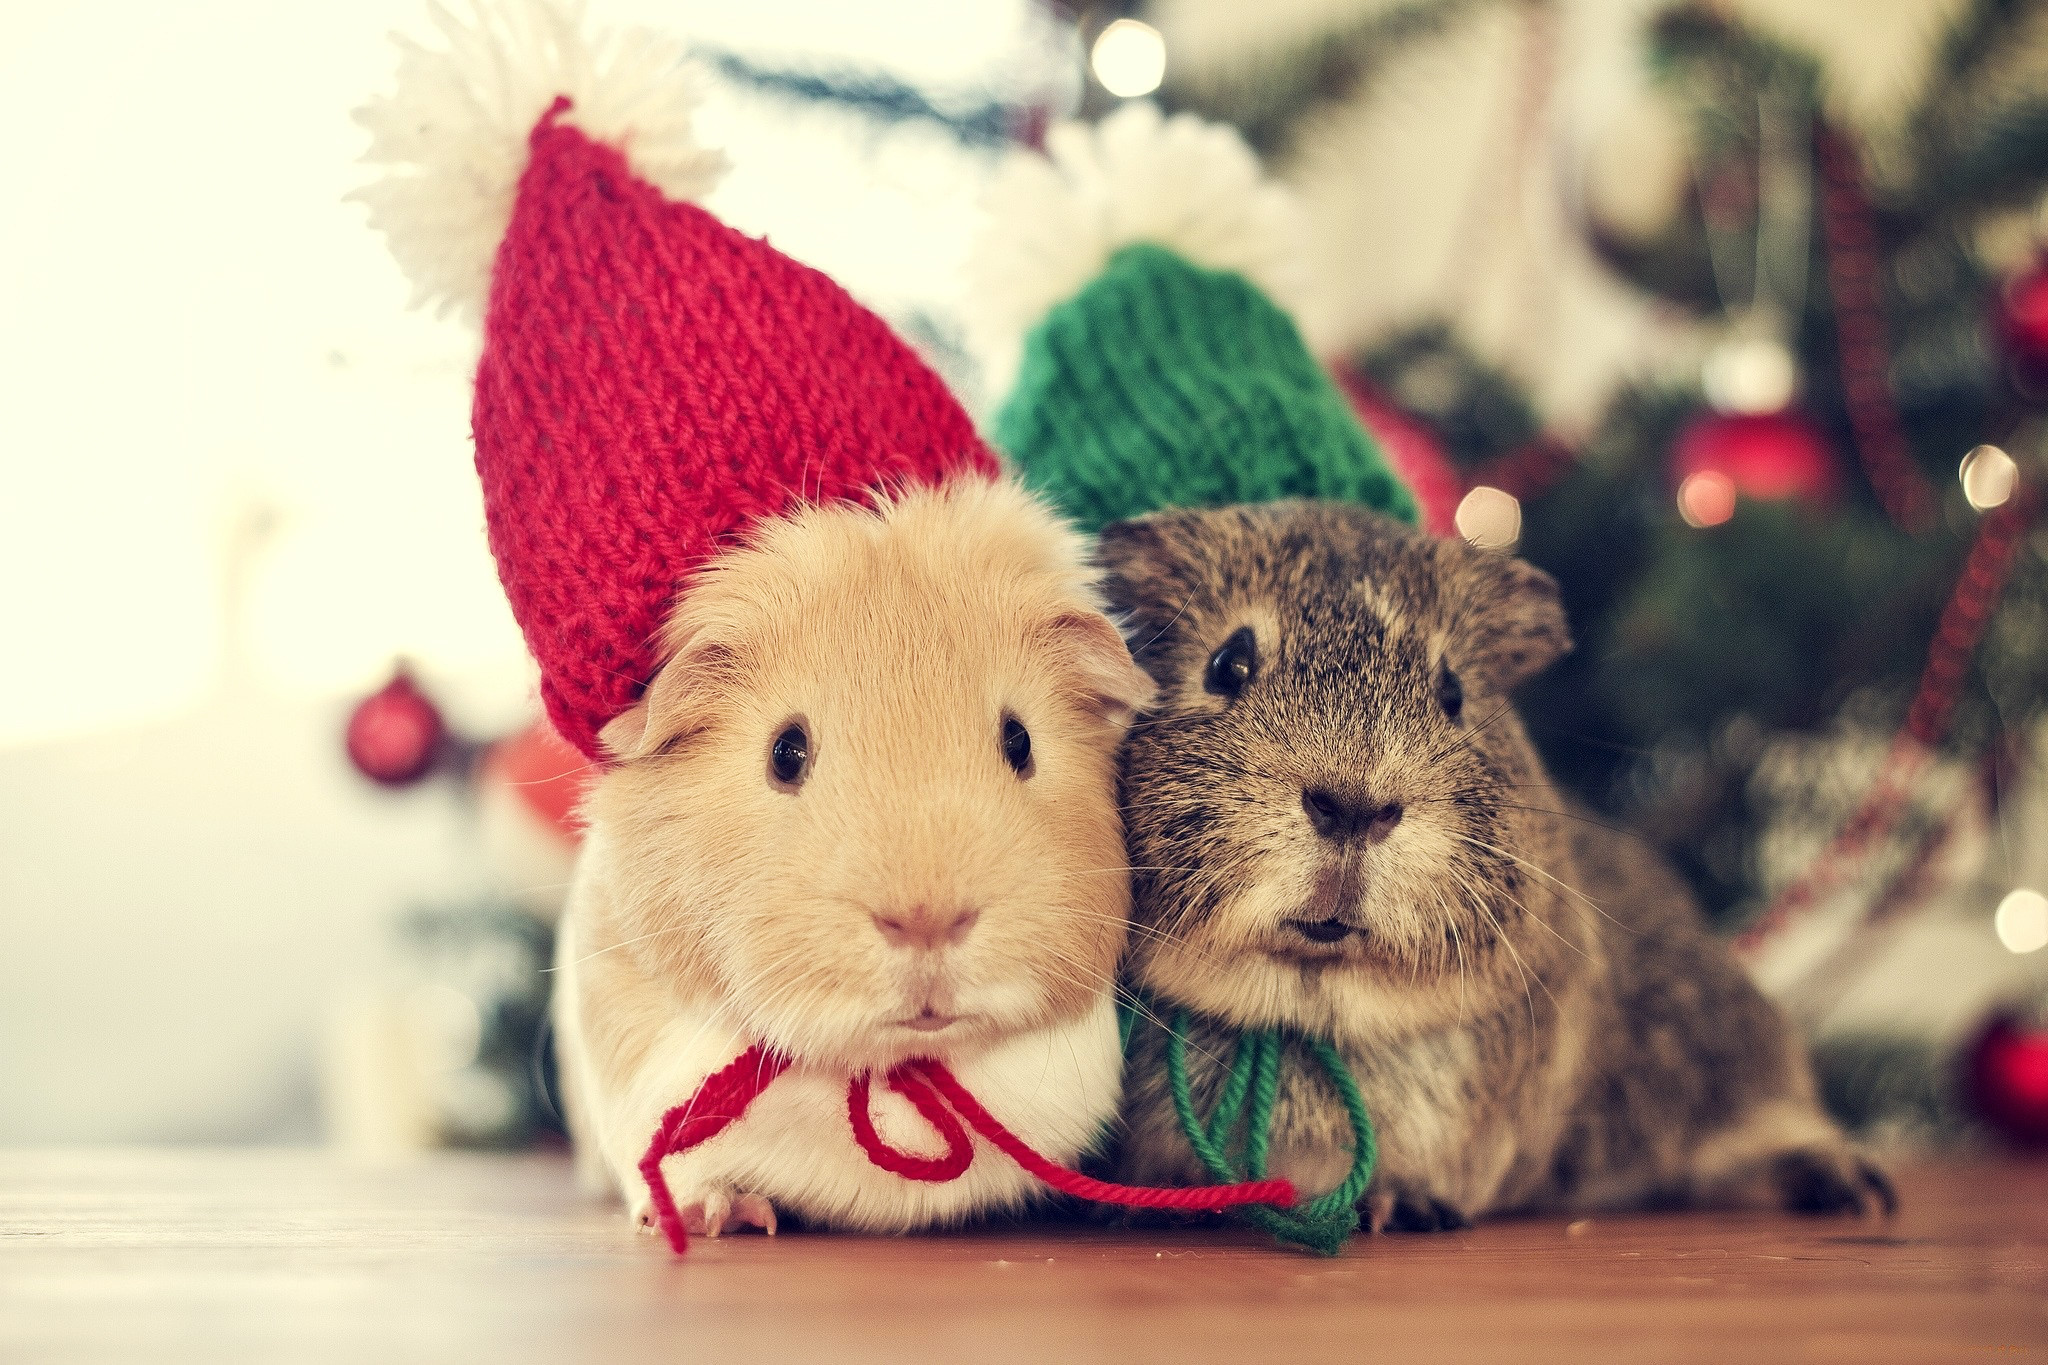 Christmas Animal Wallpaper  67  images  2048x1365 Christmas Animals Cute Winter Cold Cozy Couple Holiday Mouse  wallpaper